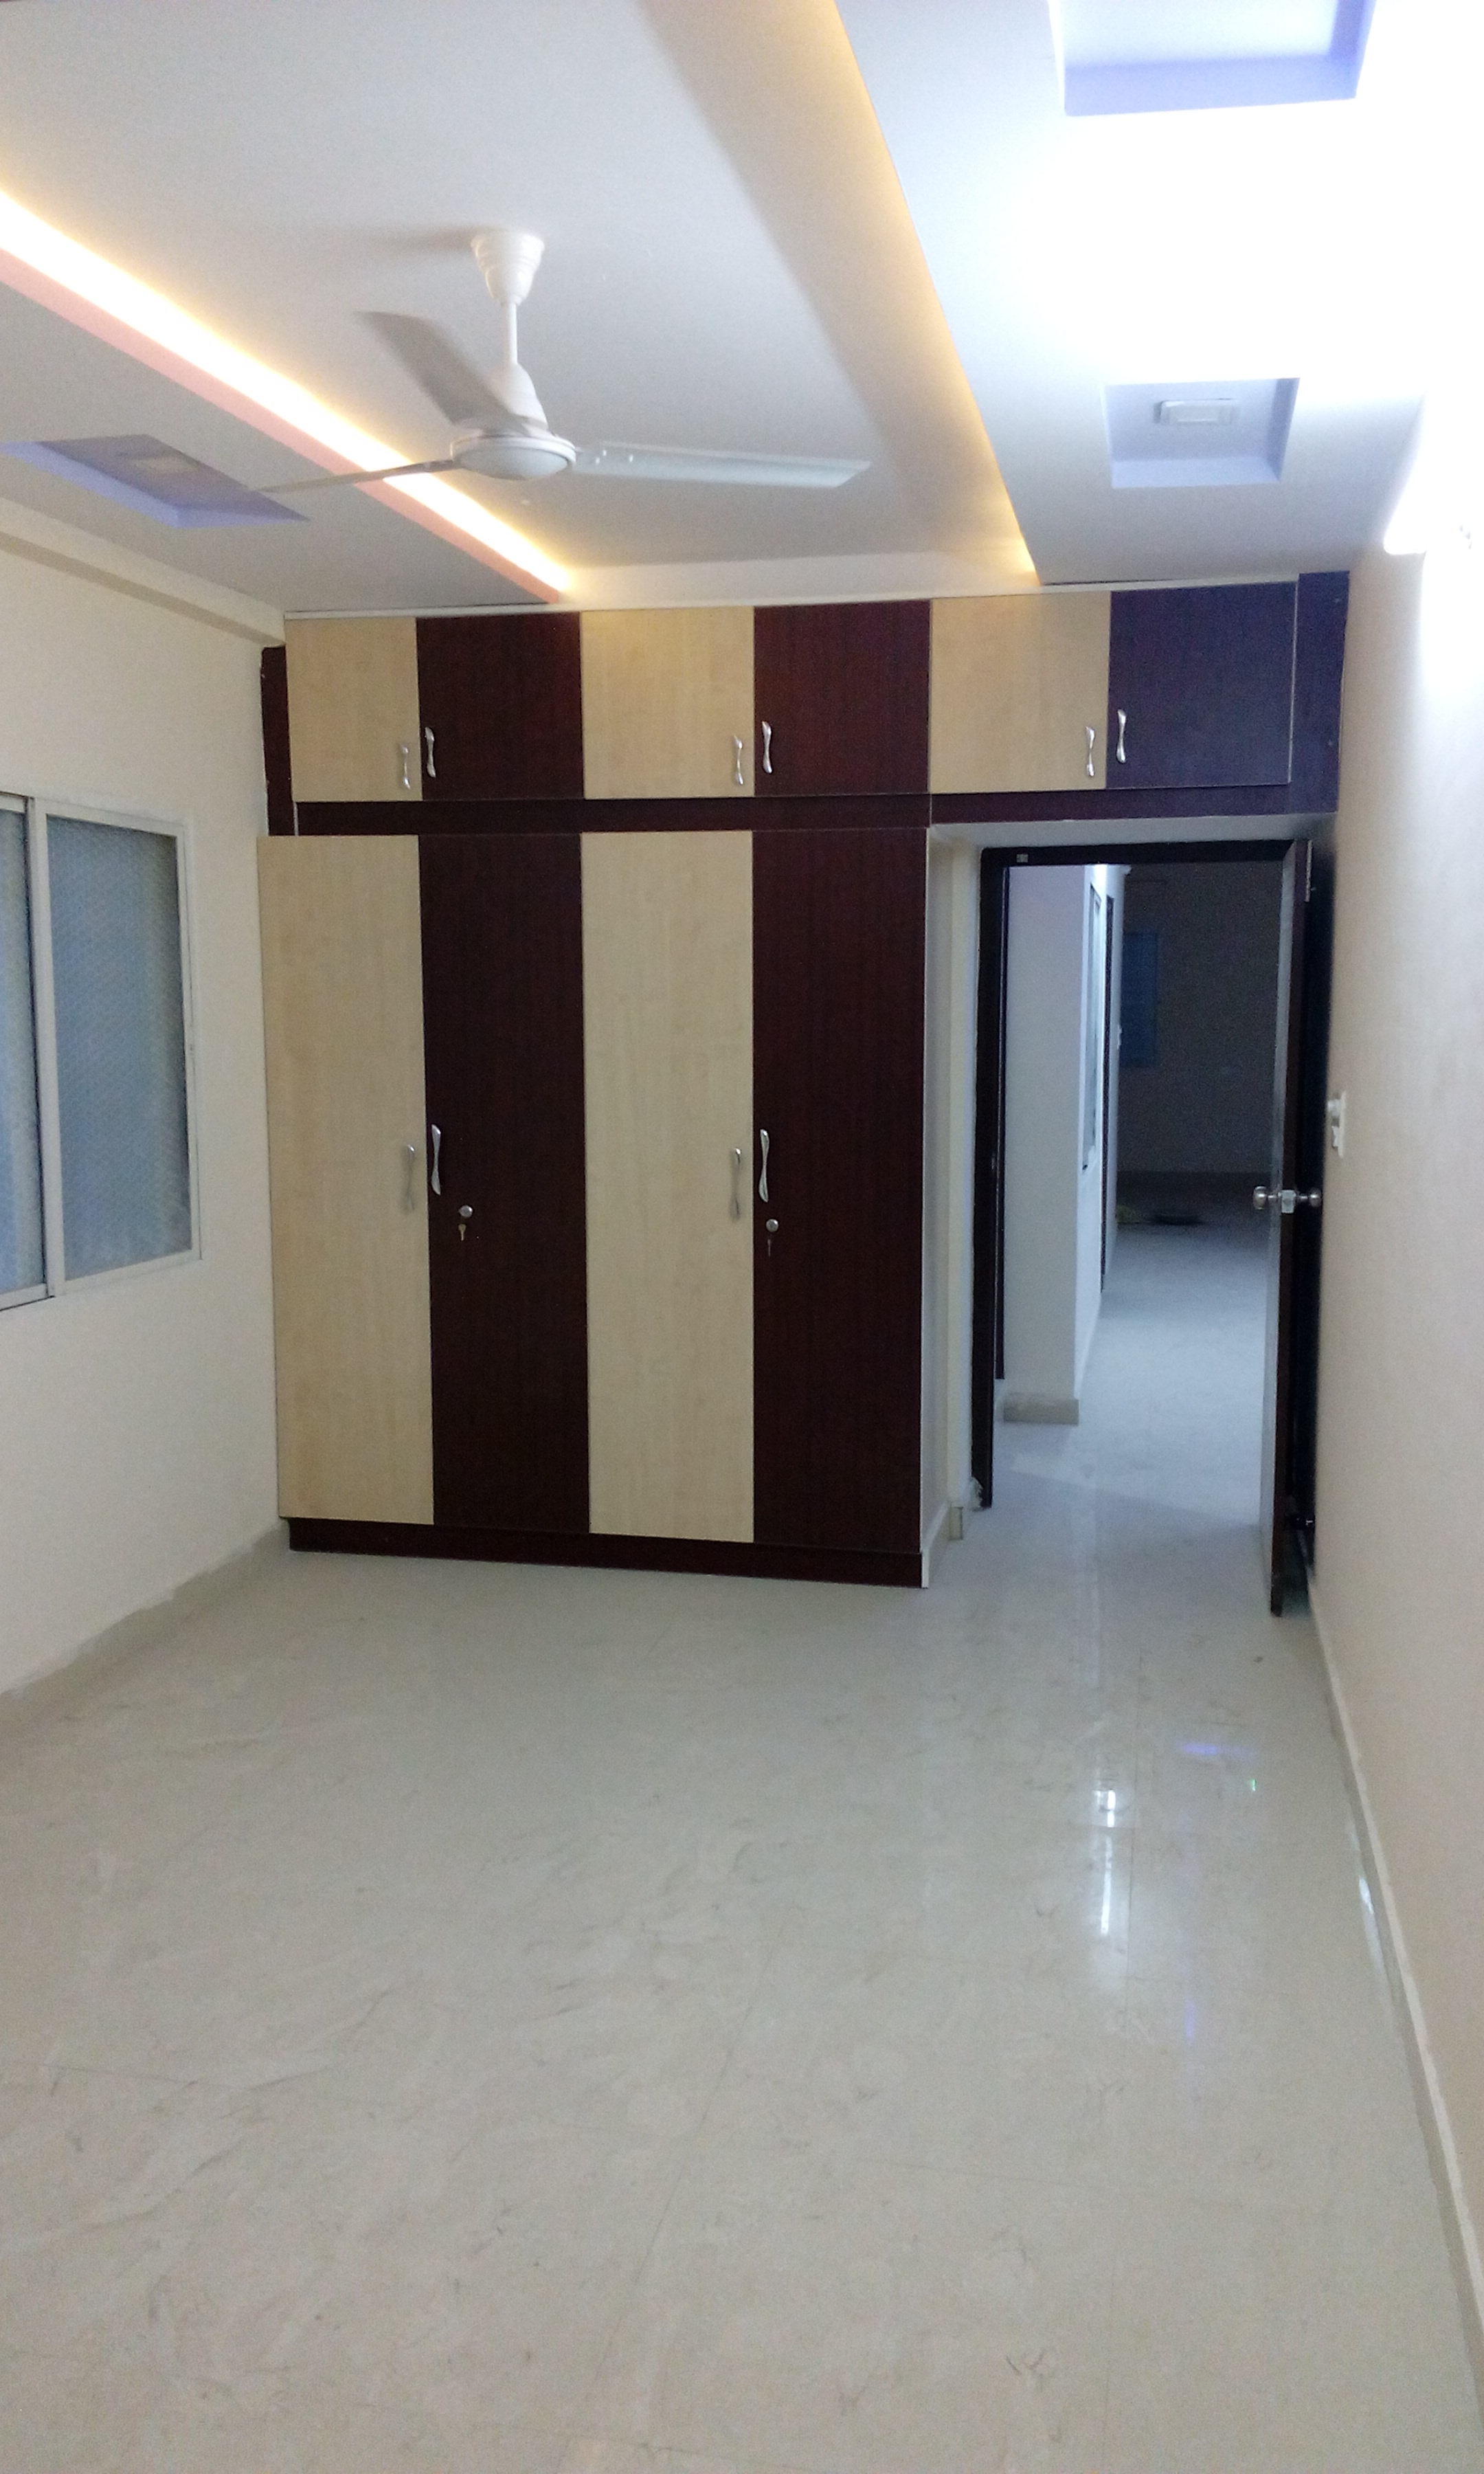 2BHK-1355sqft-flat-for-rent-in-Manikonda-Hyderabad-TP12-154676